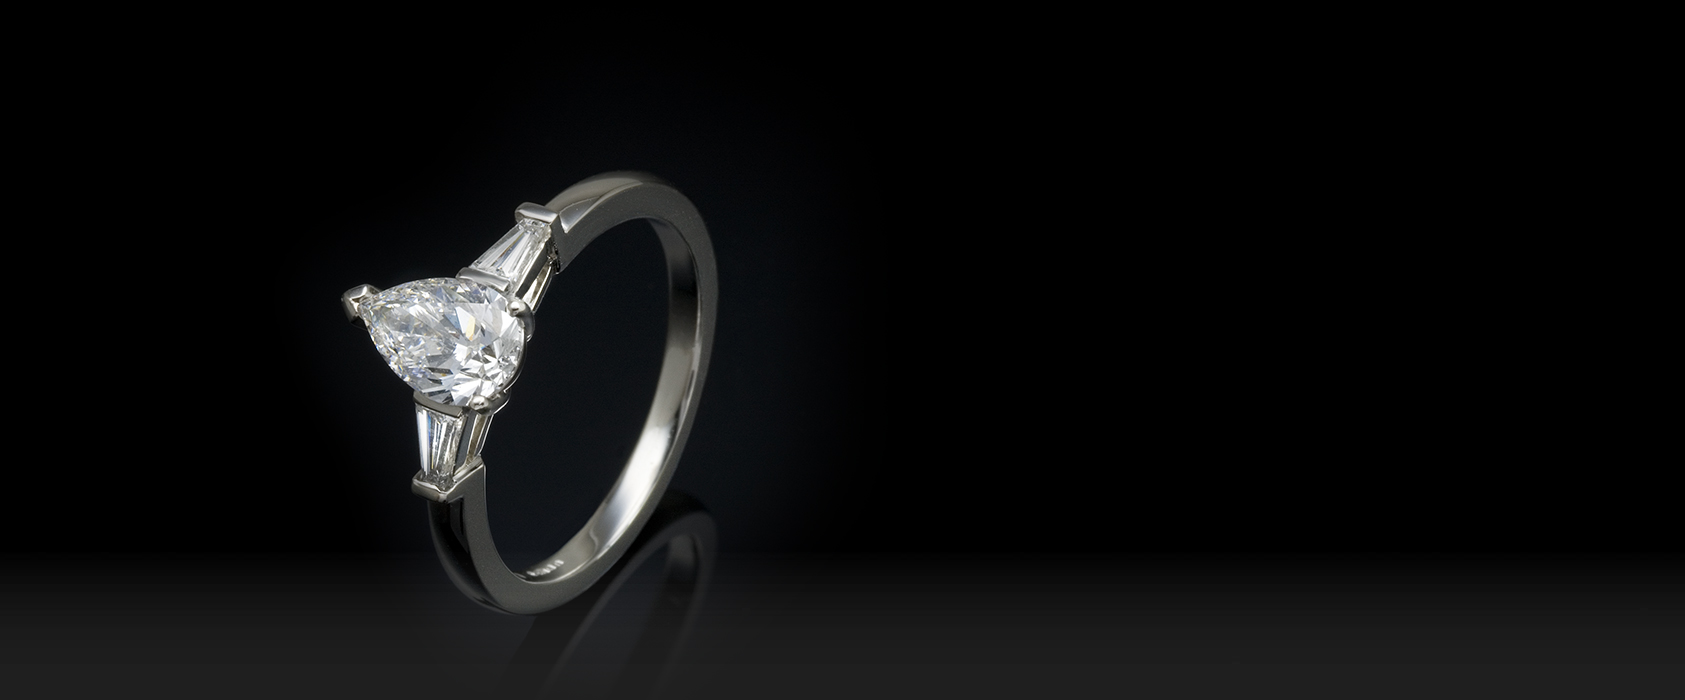 Reasons to Consider a Solitaire Ring